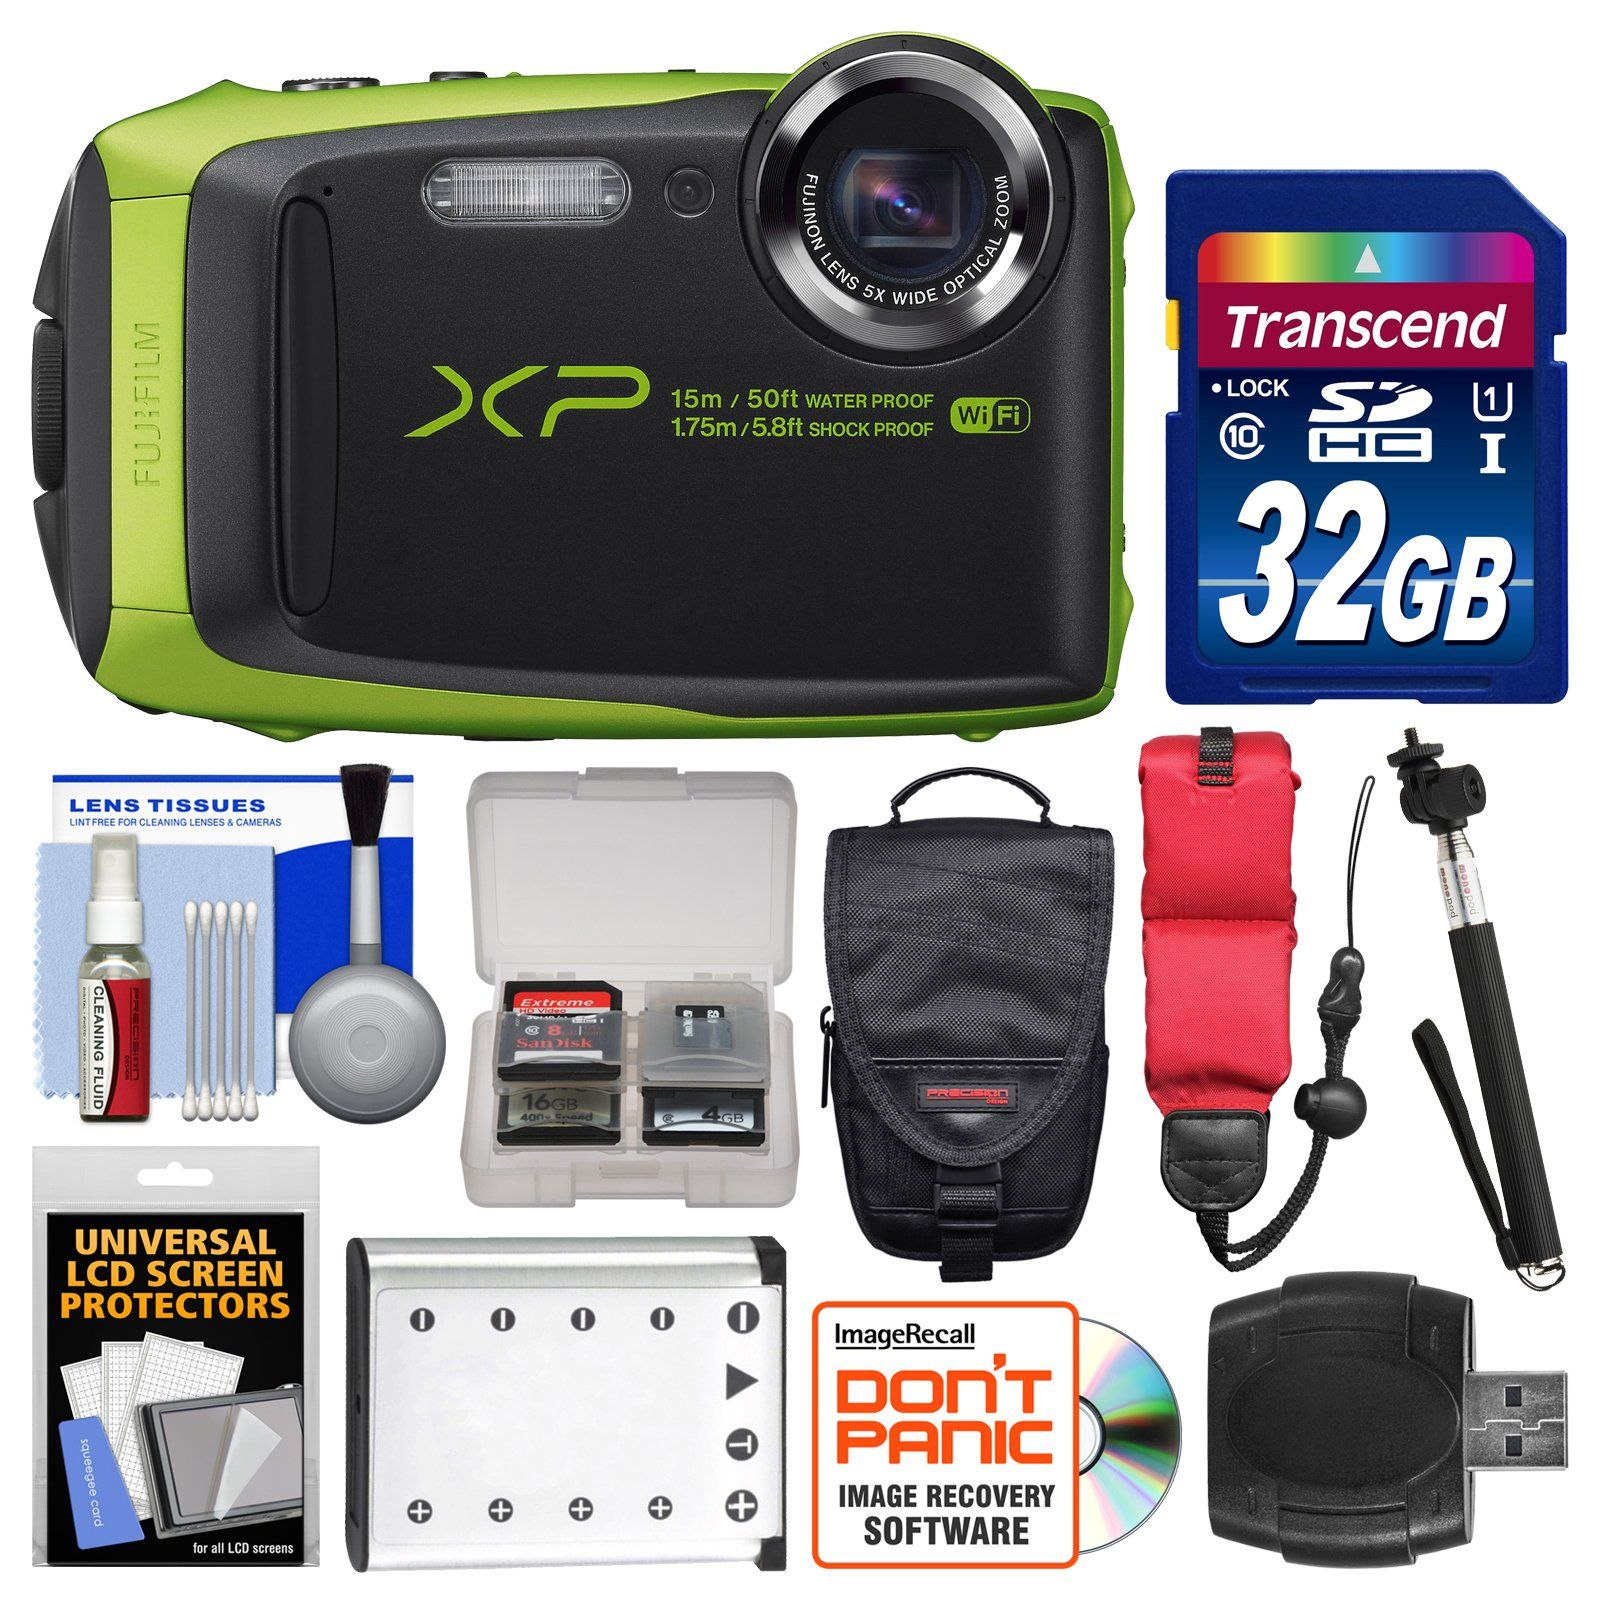 Fujifilm FinePix XP90 Shock & Waterproof Wi-Fi Digital Camera (Black/Lime Green) with 32GB Card + Case + Battery + Selfie Stick + Float Strap + Kit. KIT INCLUDES 11 PRODUCTS -- All BRAND NEW Items with all Manufacturer-supplied Accessories + Full USA Warranties:. [1] Fujifilm FinePix XP90 Shock & Waterproof Wi-Fi Digital Camera (Black/Lime Green) + [2] Transcend 32GB SDHC 300x Card +. [3] Spare Rechargeable Battery + [4] PD C190D Digital Camera Case + [5] Floating Foam Camera Strap +. [6]…